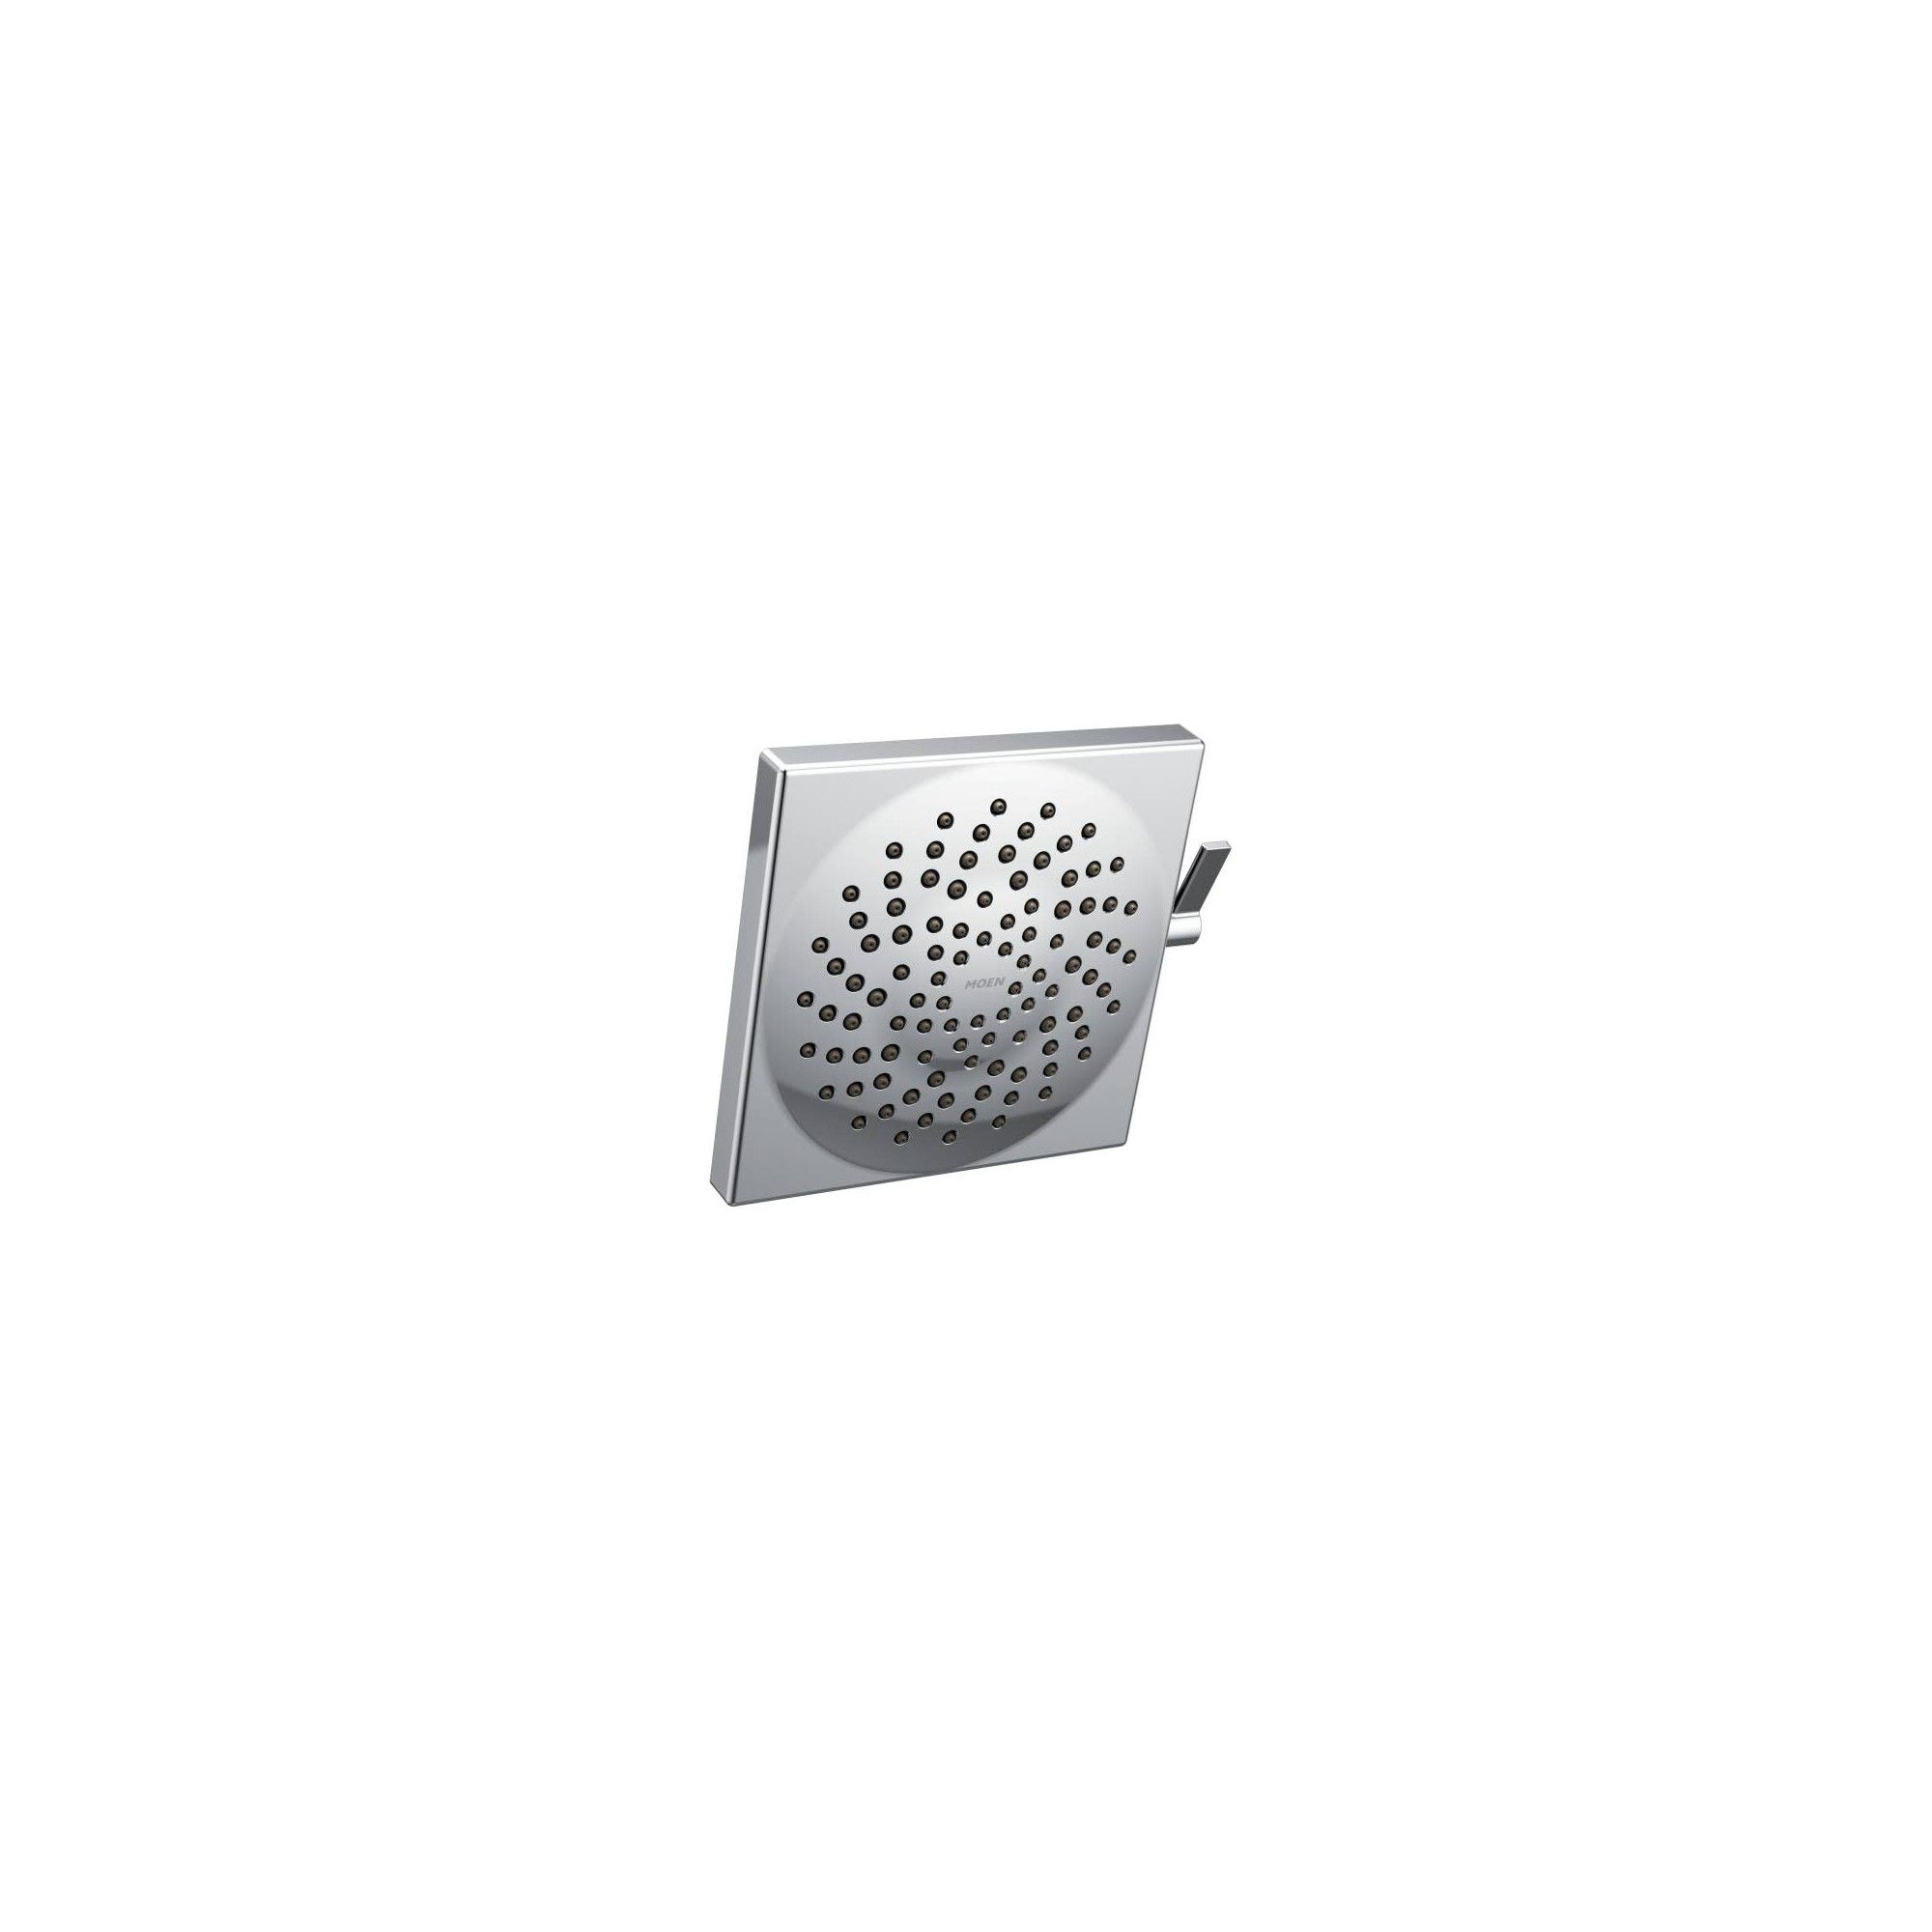 Moen S6345ep Velocity 1 75 Gpm Two Function Rainshower With Swivel